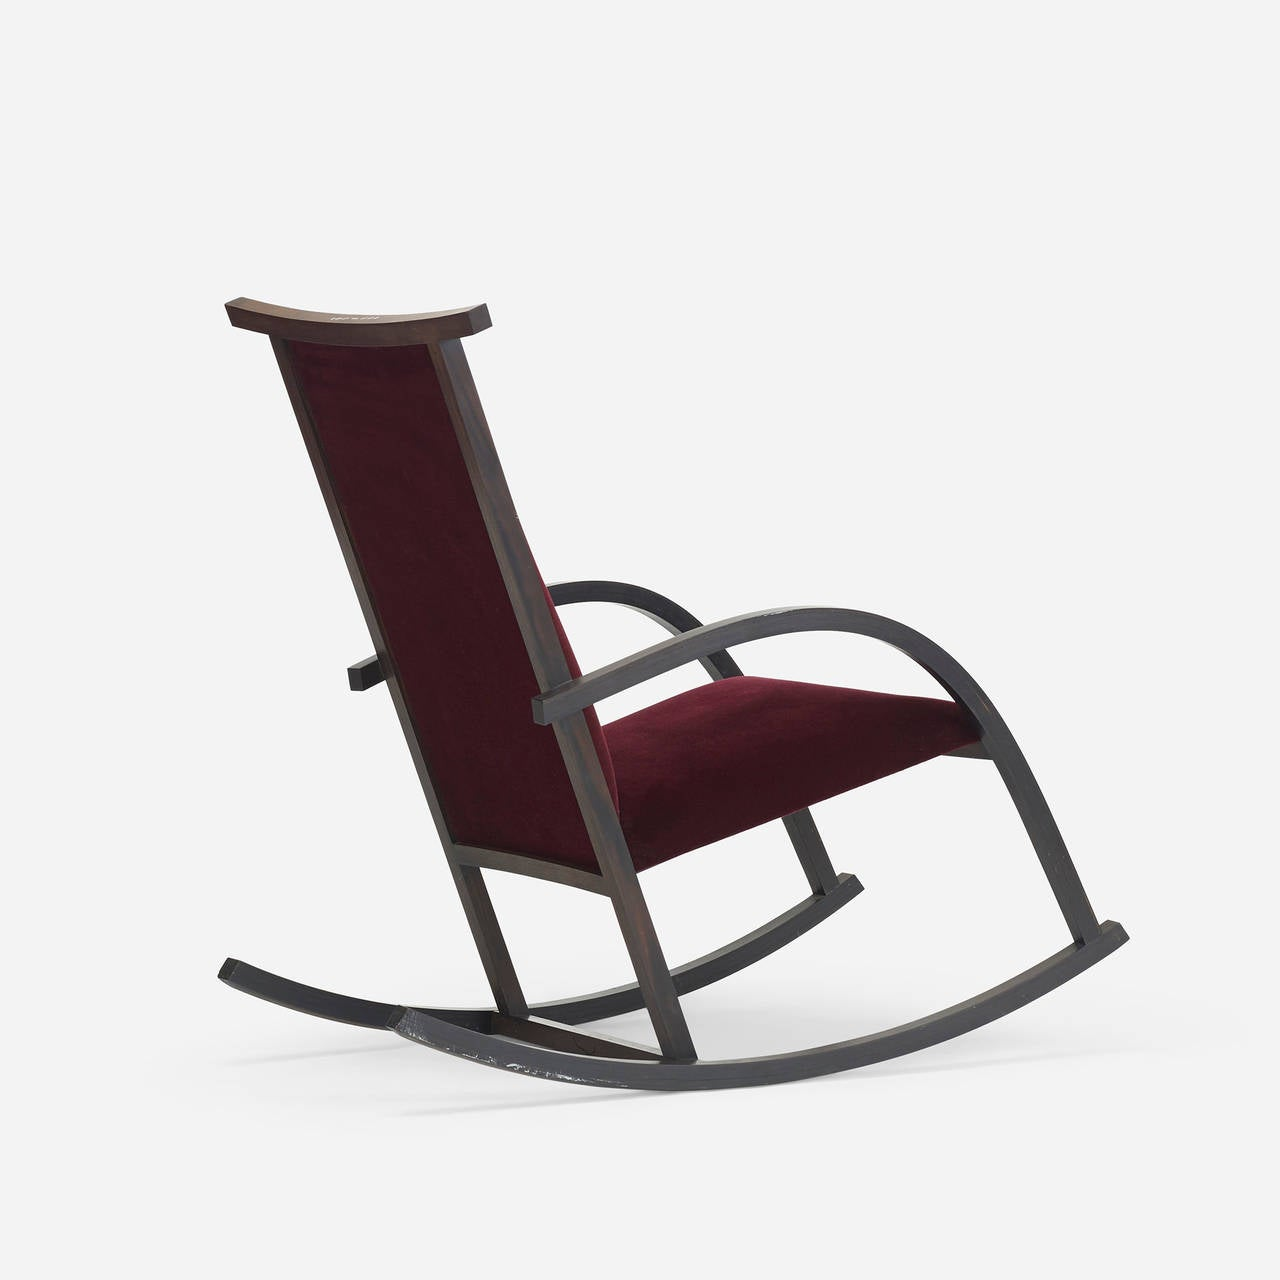 Riart Rocker By Carlos Riart For Knoll International At 1stdibs